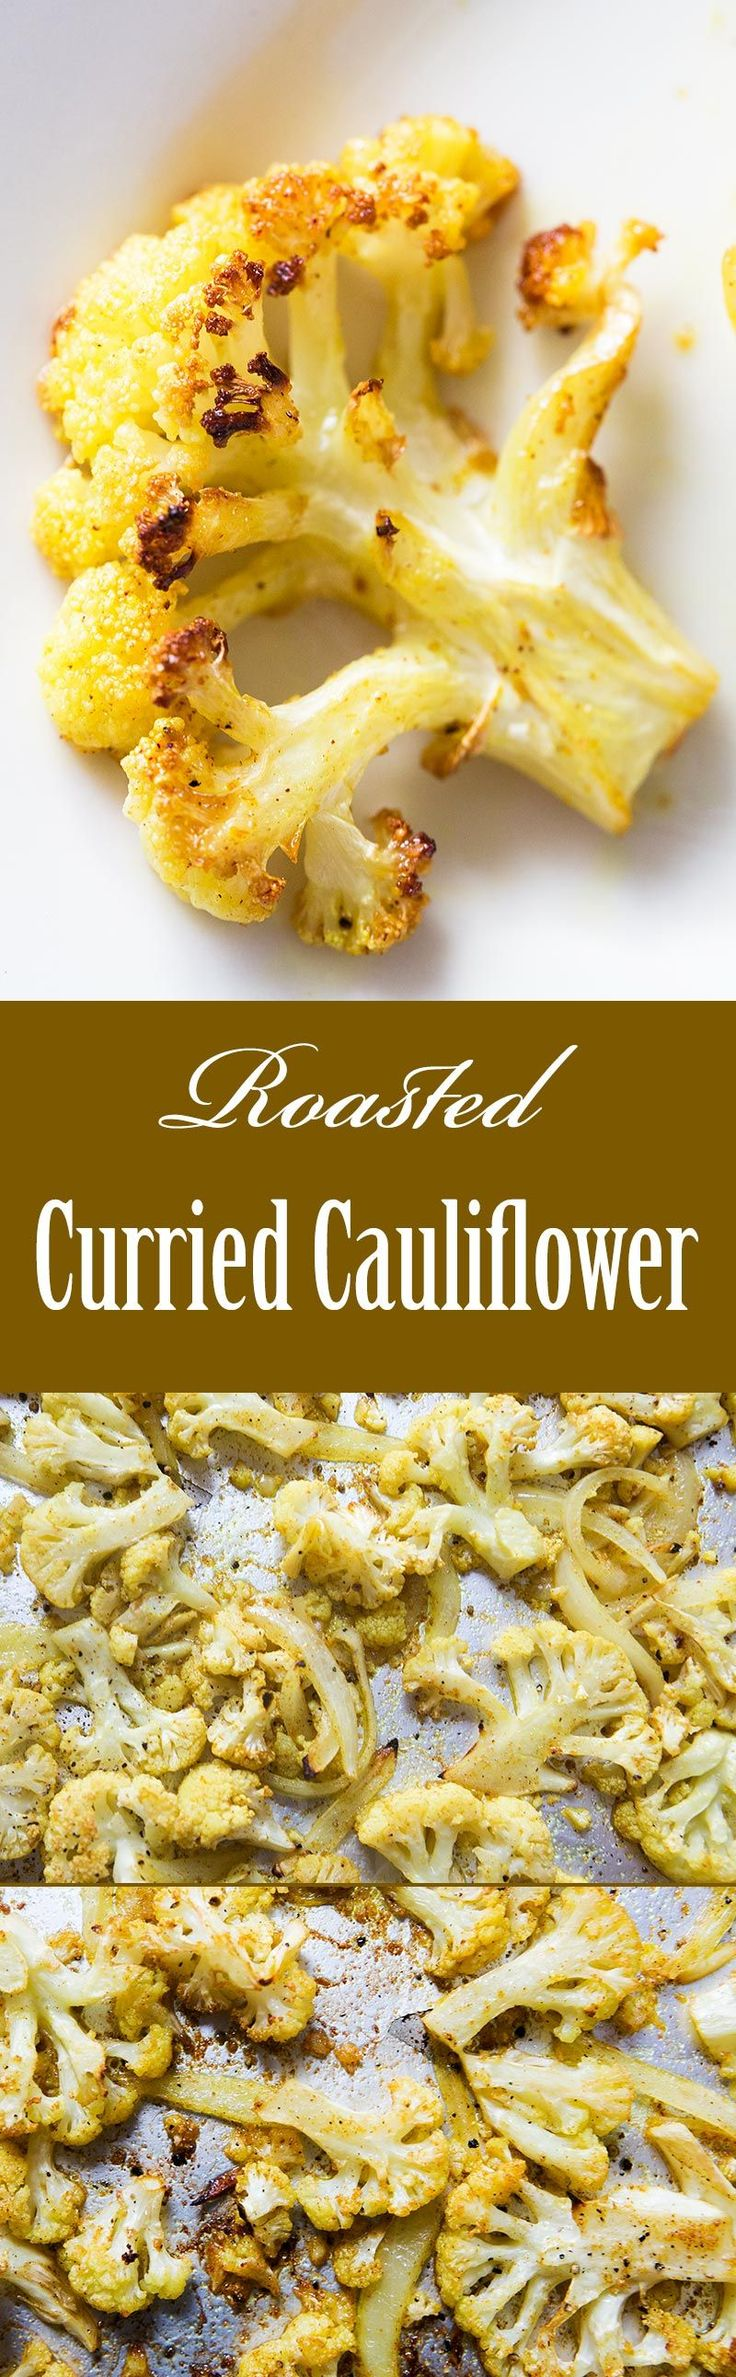 The only thing better than roasted cauliflower? Roasted Curried Cauliflower! On SimplyRecipes.com